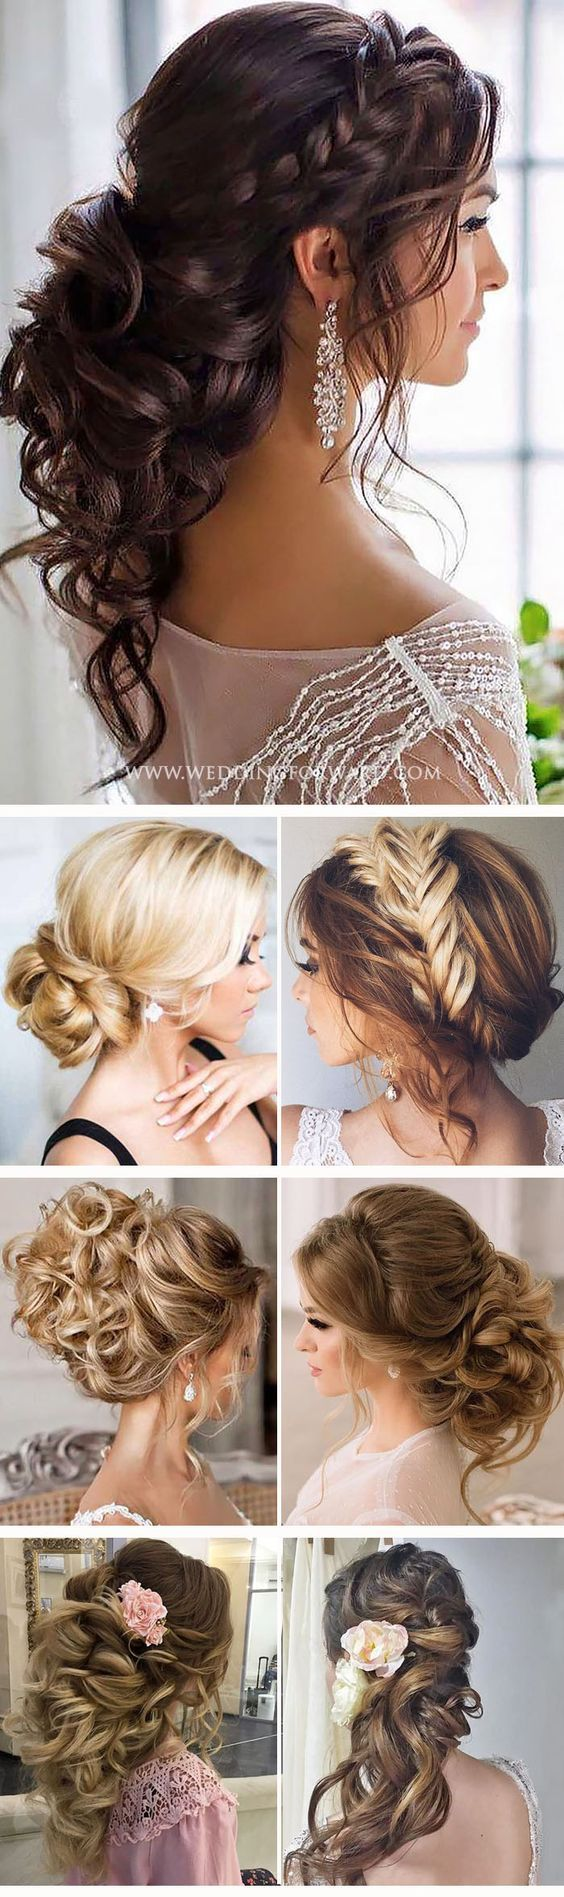 Wedding Quotes : Hair inspiration is when we go crazy over chic